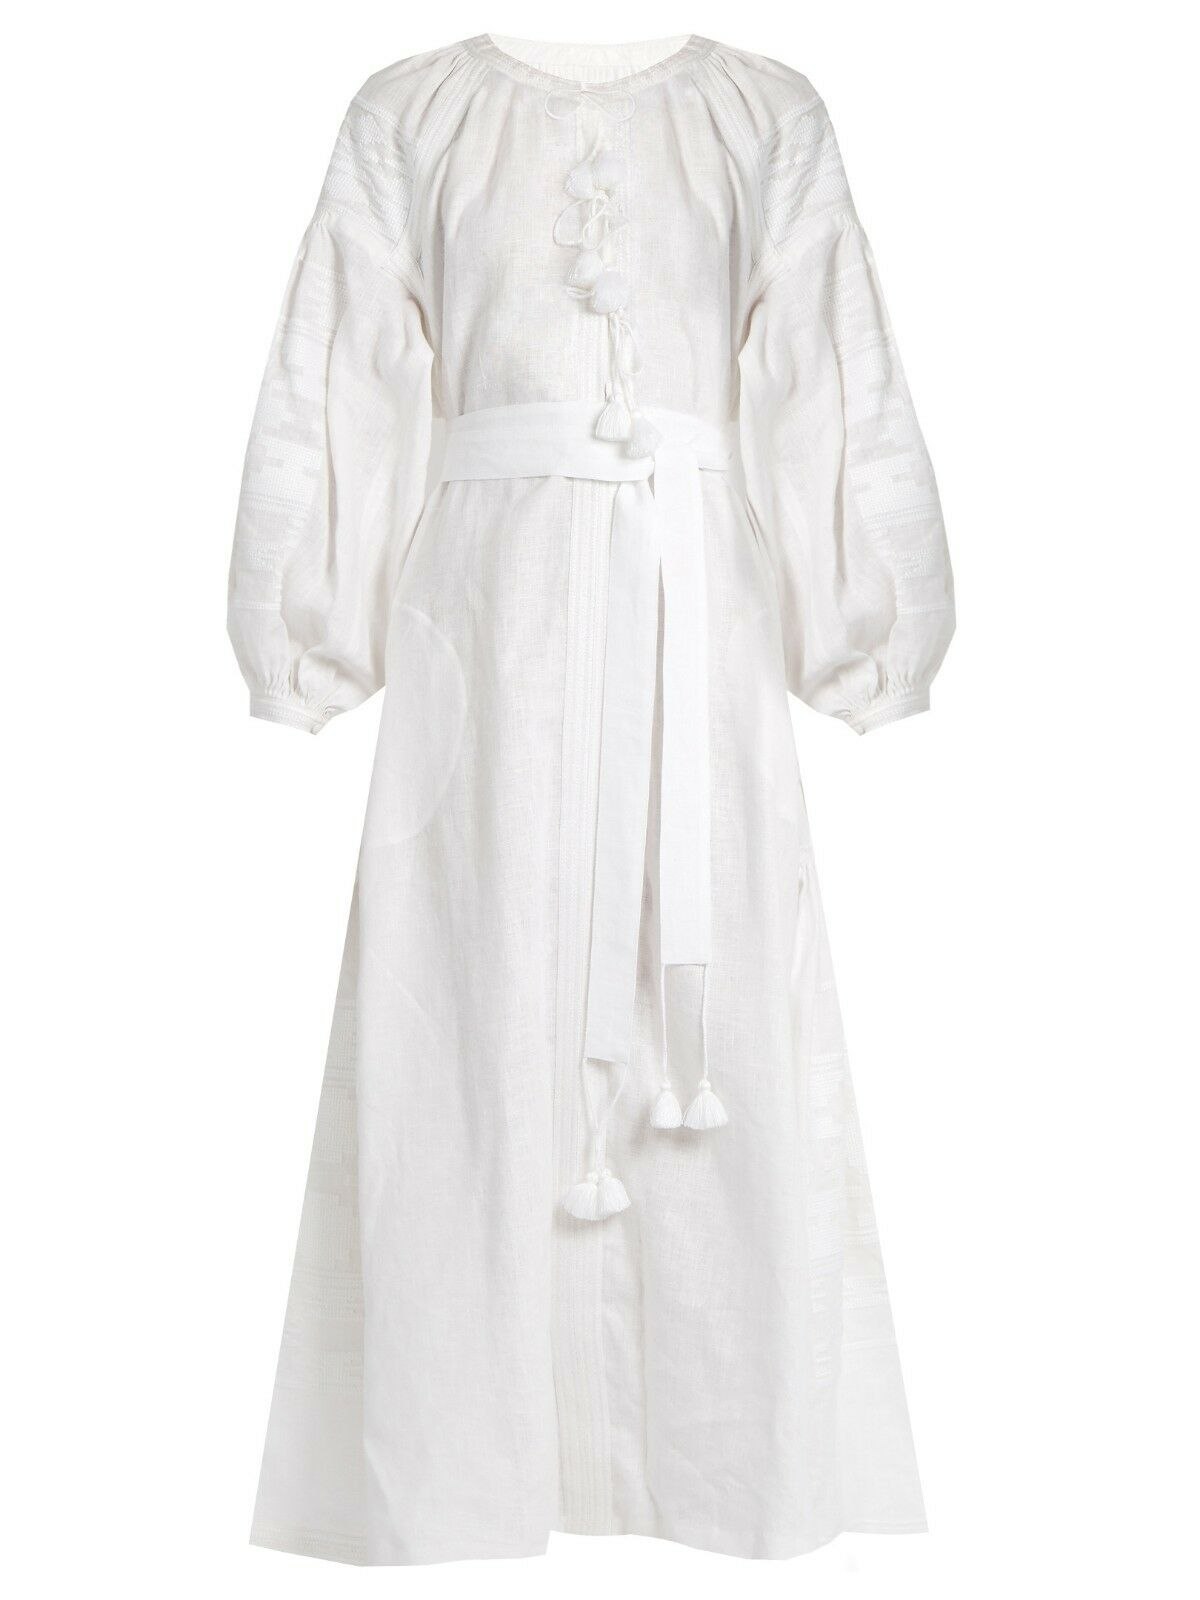 Embroidered white linen dress boho style -ukrainian ethnic vyshyvanka. All All All sizes 470558